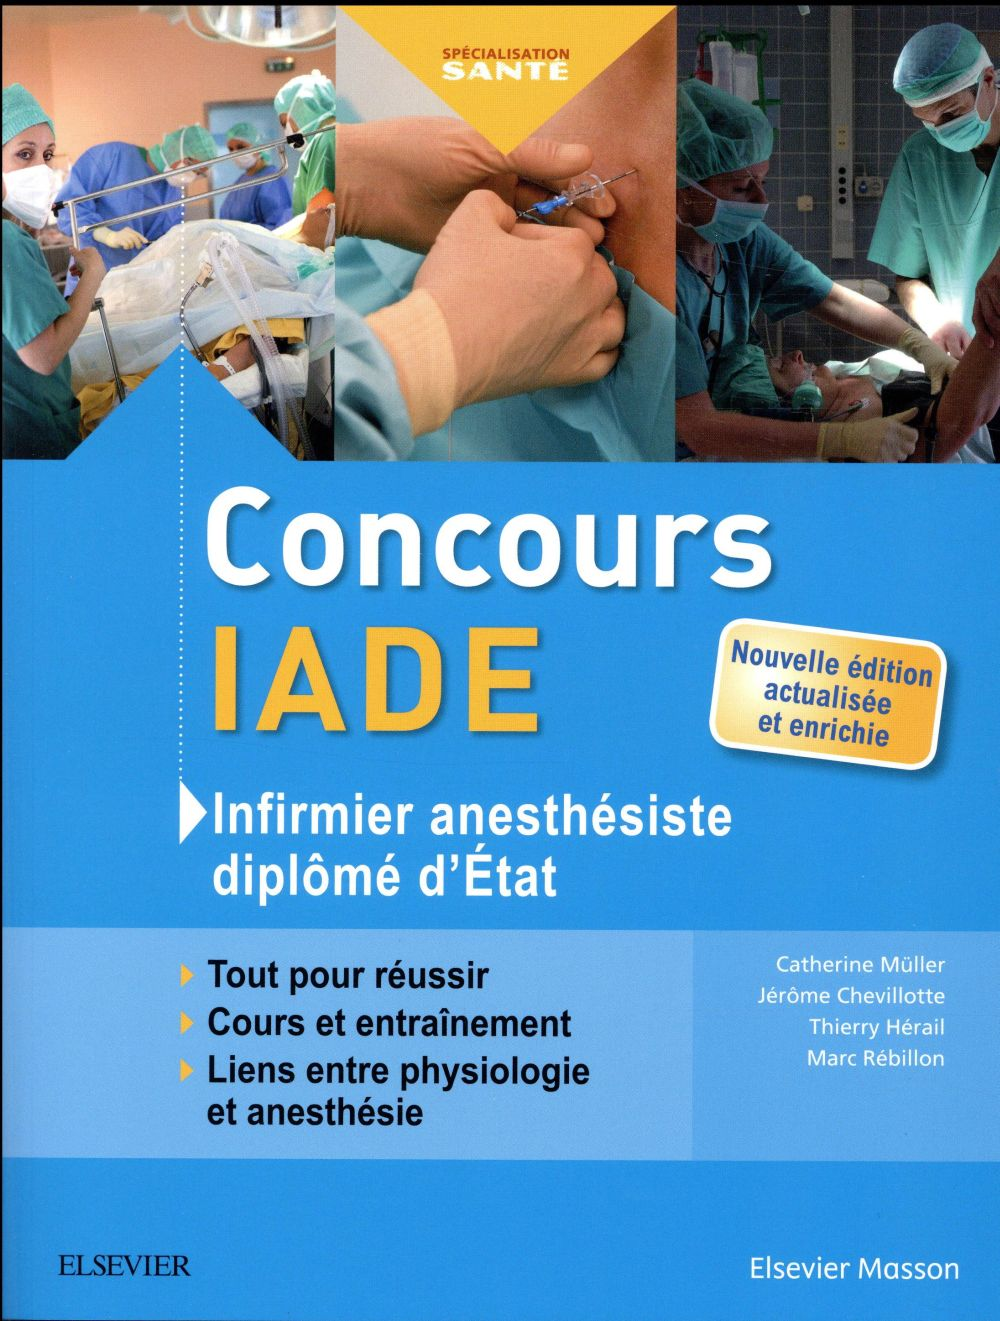 CONCOURS IADE  -  INFIRMIER ANESTHESISTE DIPLOME D'ETAT MULLER, CATHERINE MASSON